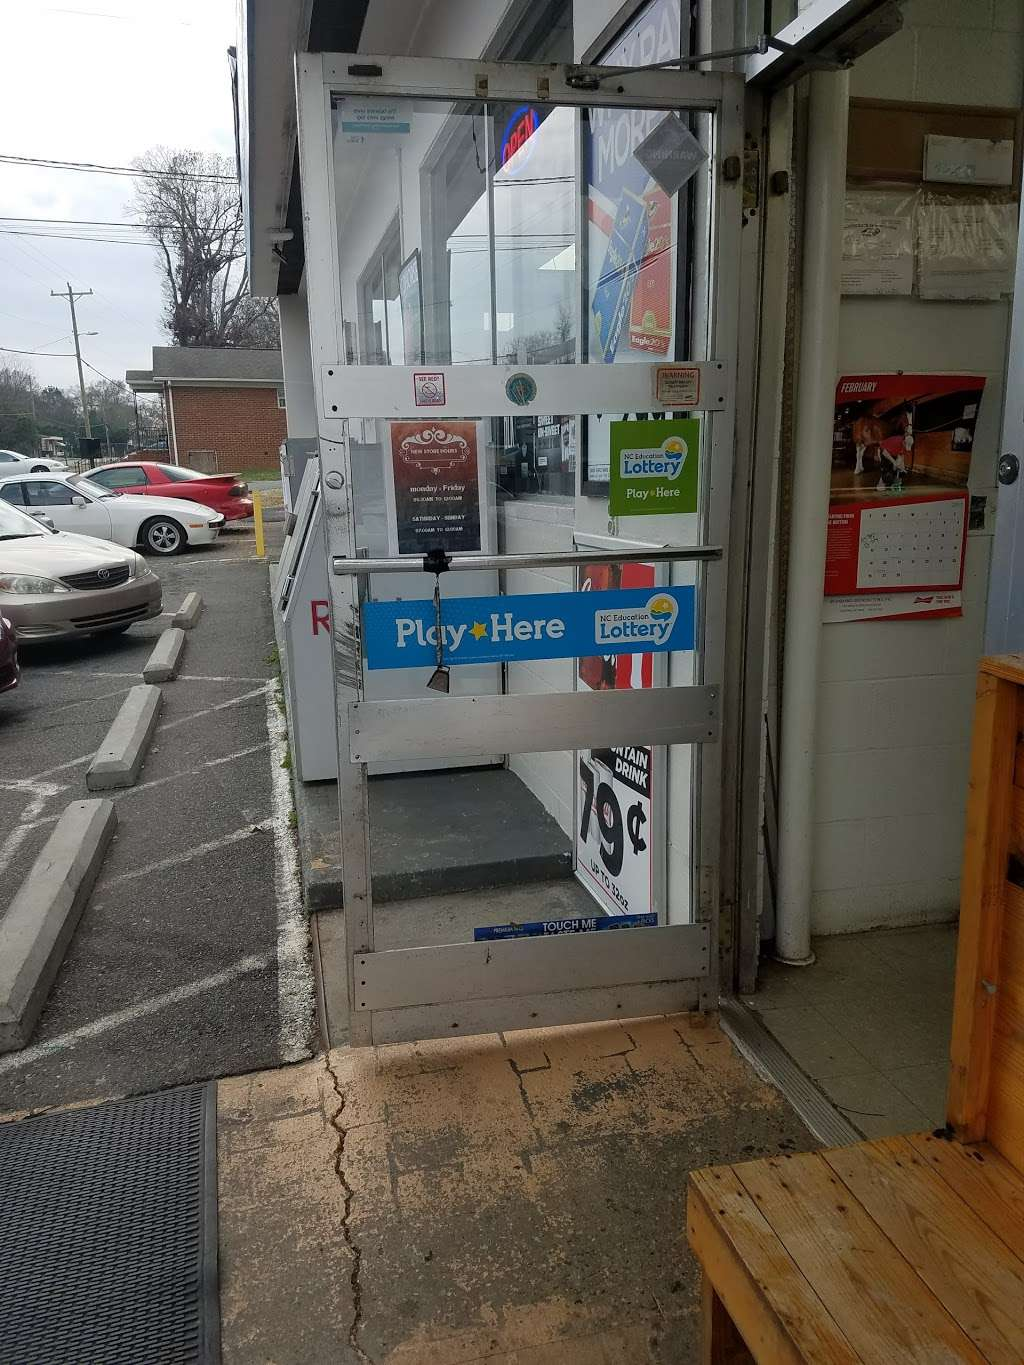 S K FOODMART - convenience store  | Photo 3 of 3 | Address: 1204 S Main St, Mt Holly, NC 28120, USA | Phone: (704) 812-8948